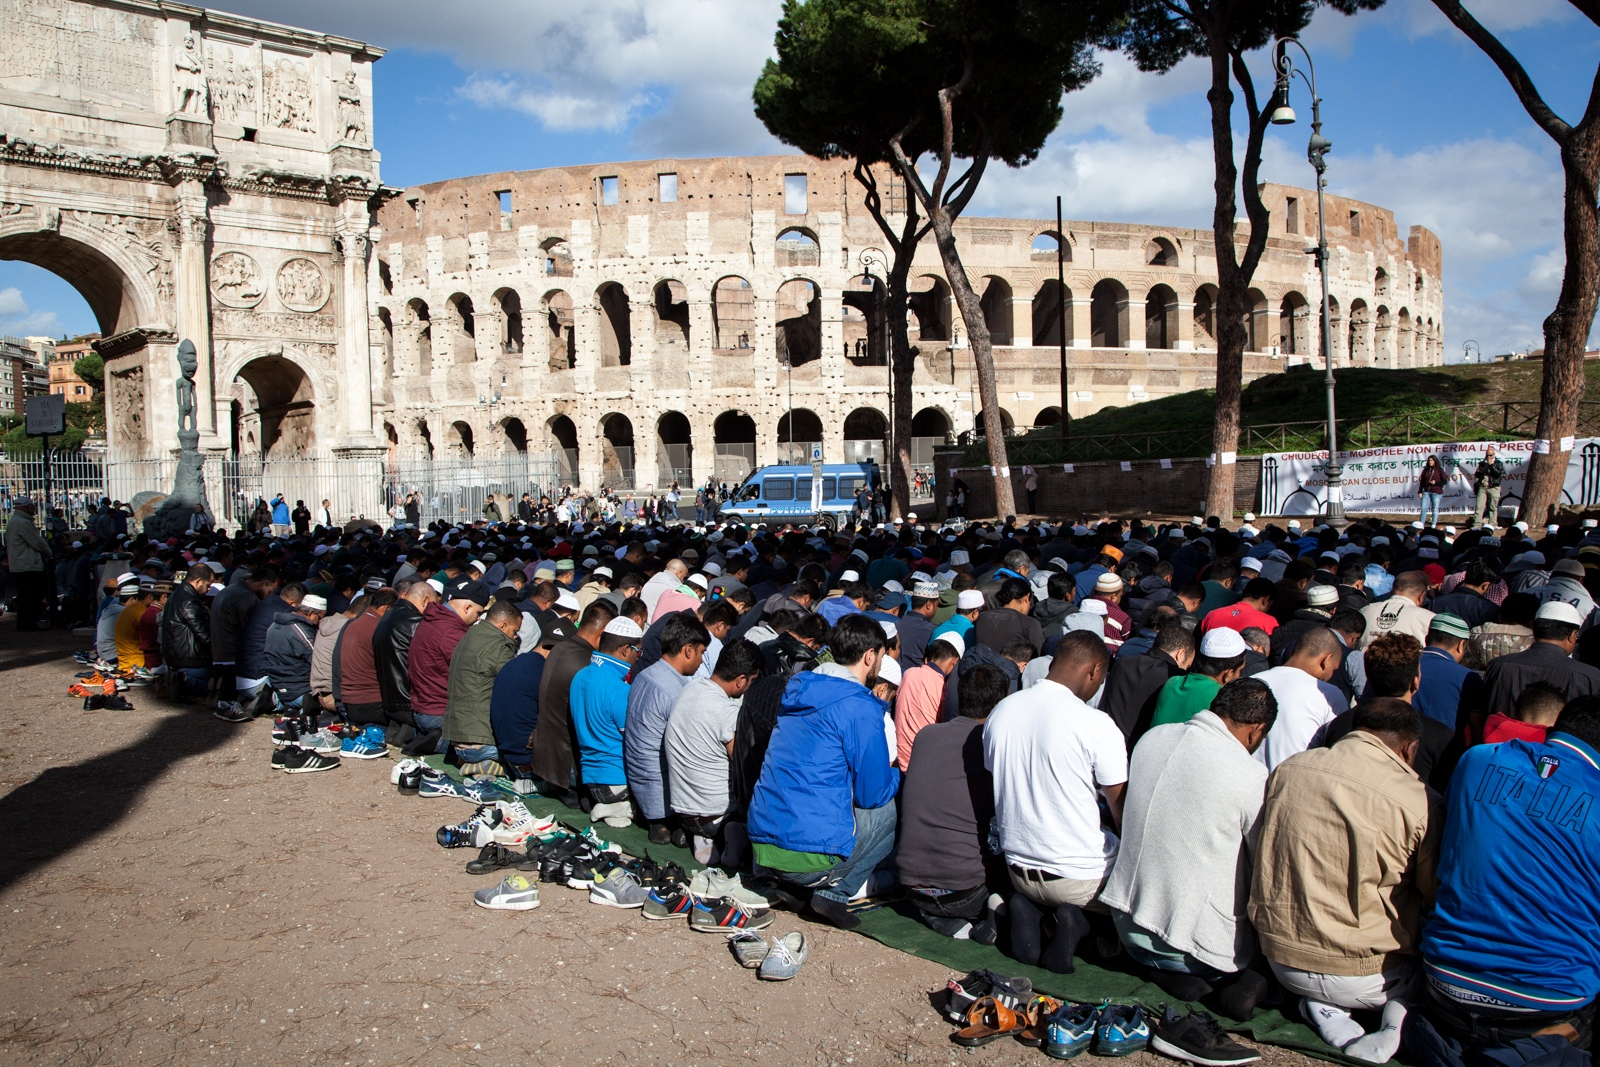 Oct. 21, 2016 - Hundreds of Muslims who lives in Rome are gathered for the Friday communal prayer in front of the Colosseum. This particular gathering was organized by some Imams to protest against the closure of a few mosque in the southeastern part of the city.